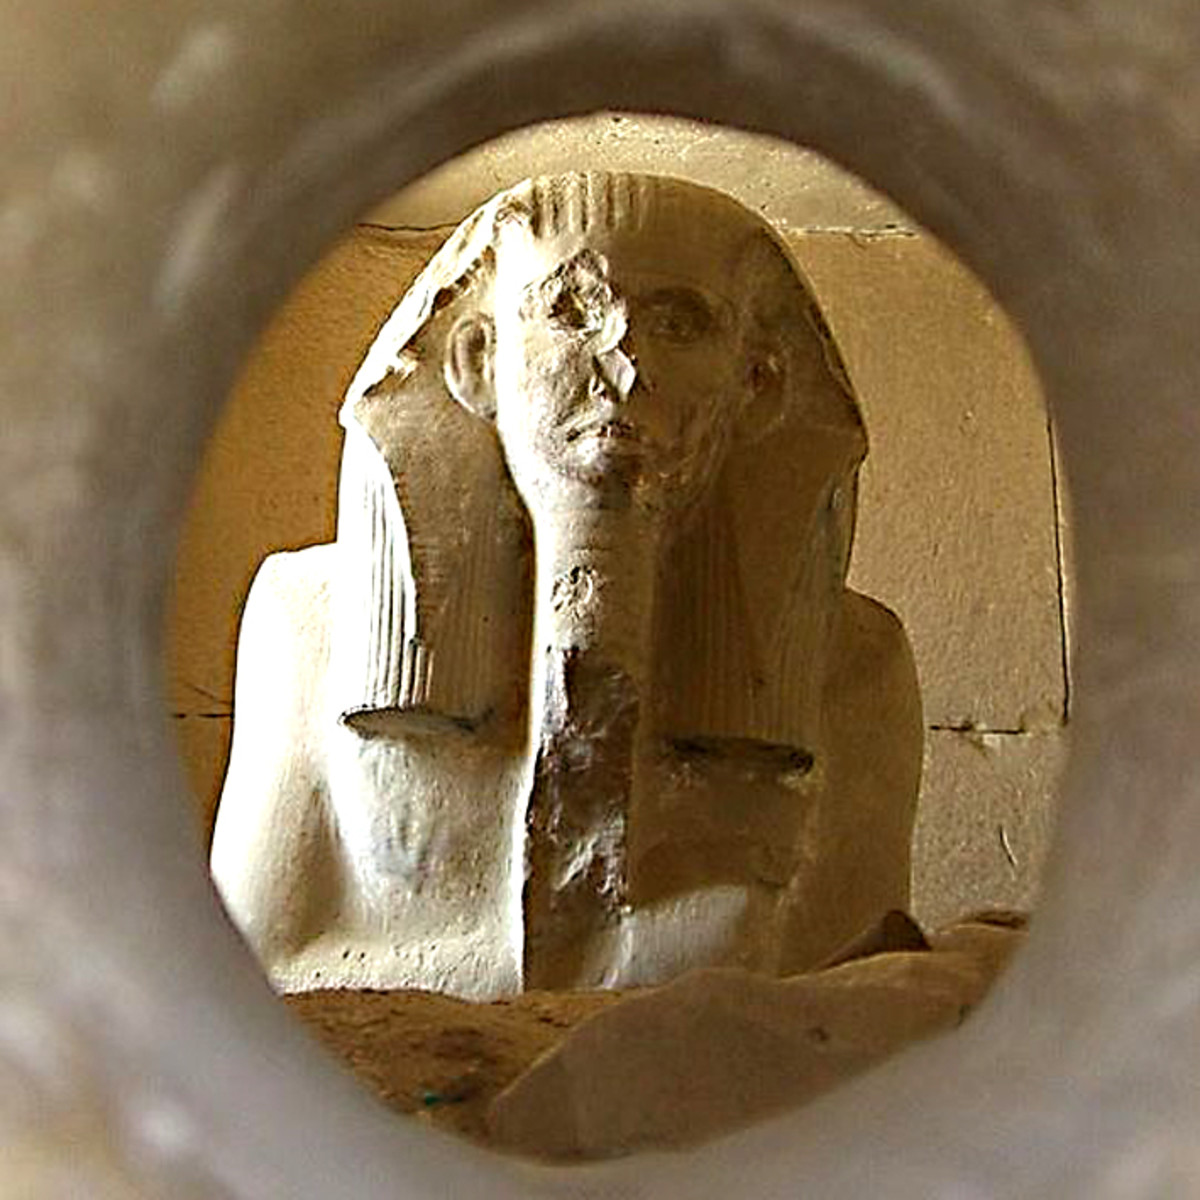 The replica statue of Djoser which now rests in one of the chambers in the burial complex at Saqqara. The original was discovered here during excavations in the 1920s